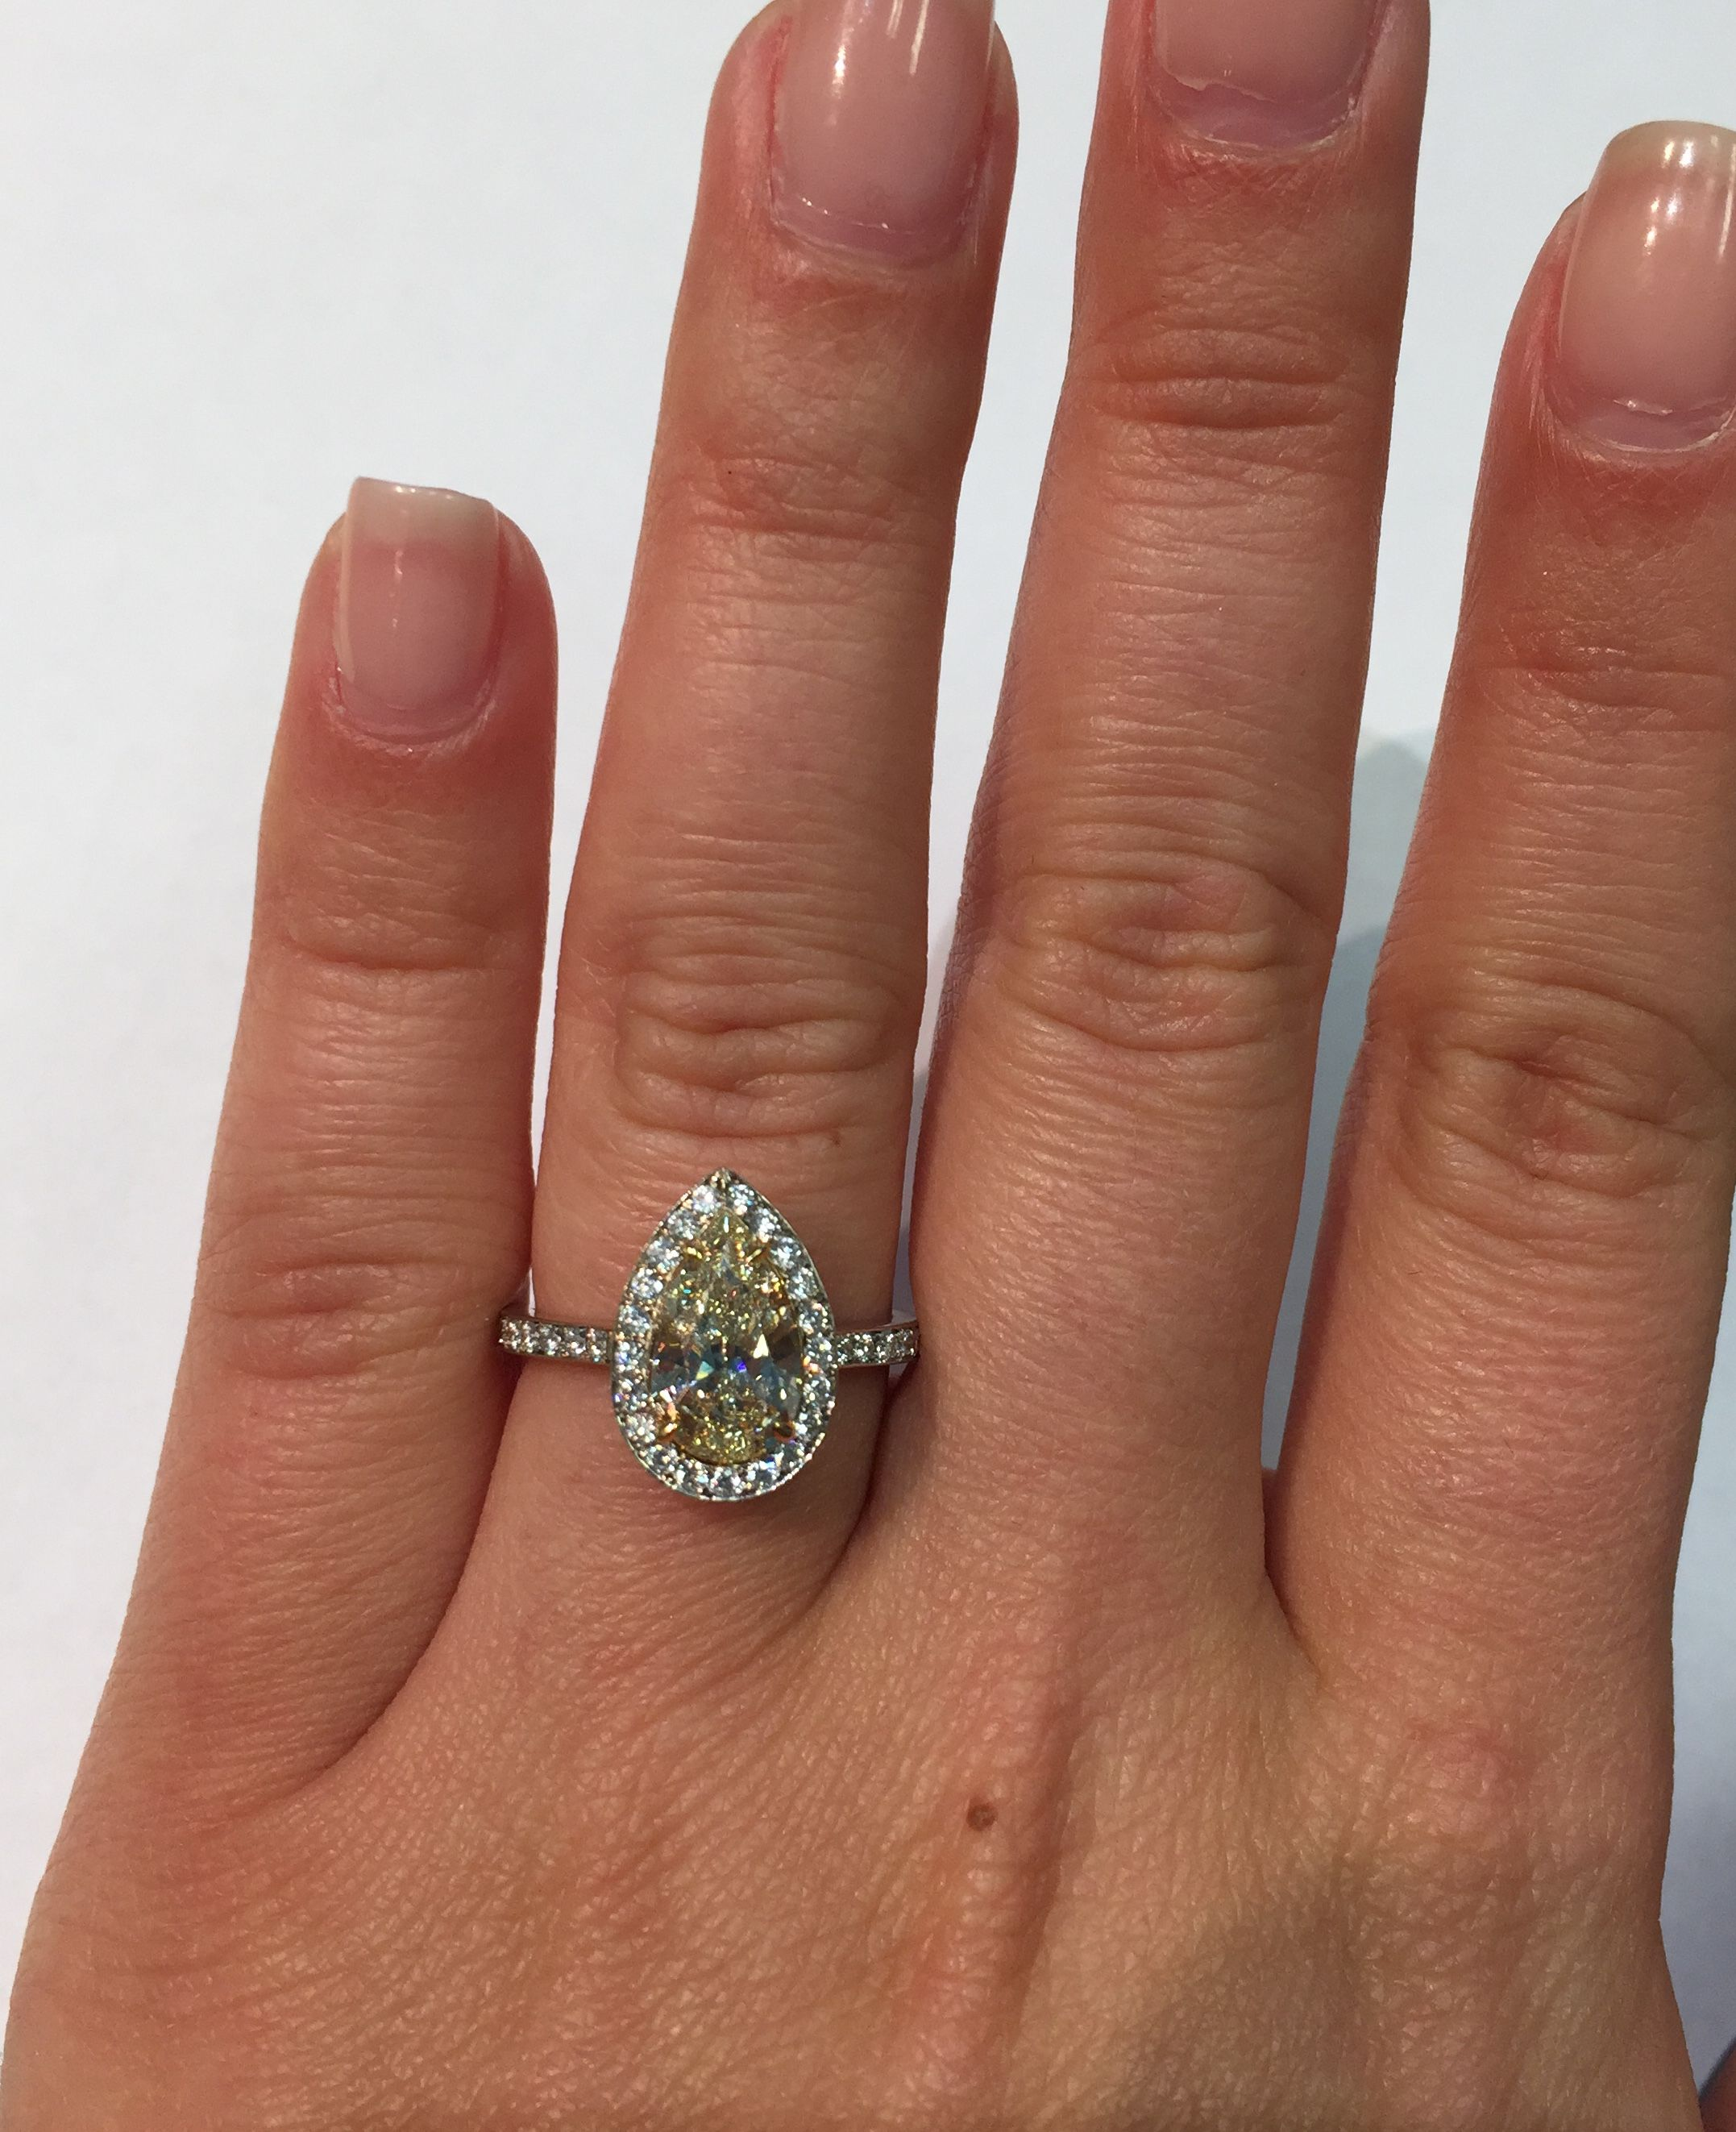 Pear shaped yellow diamond halo engagement ring amazing for a